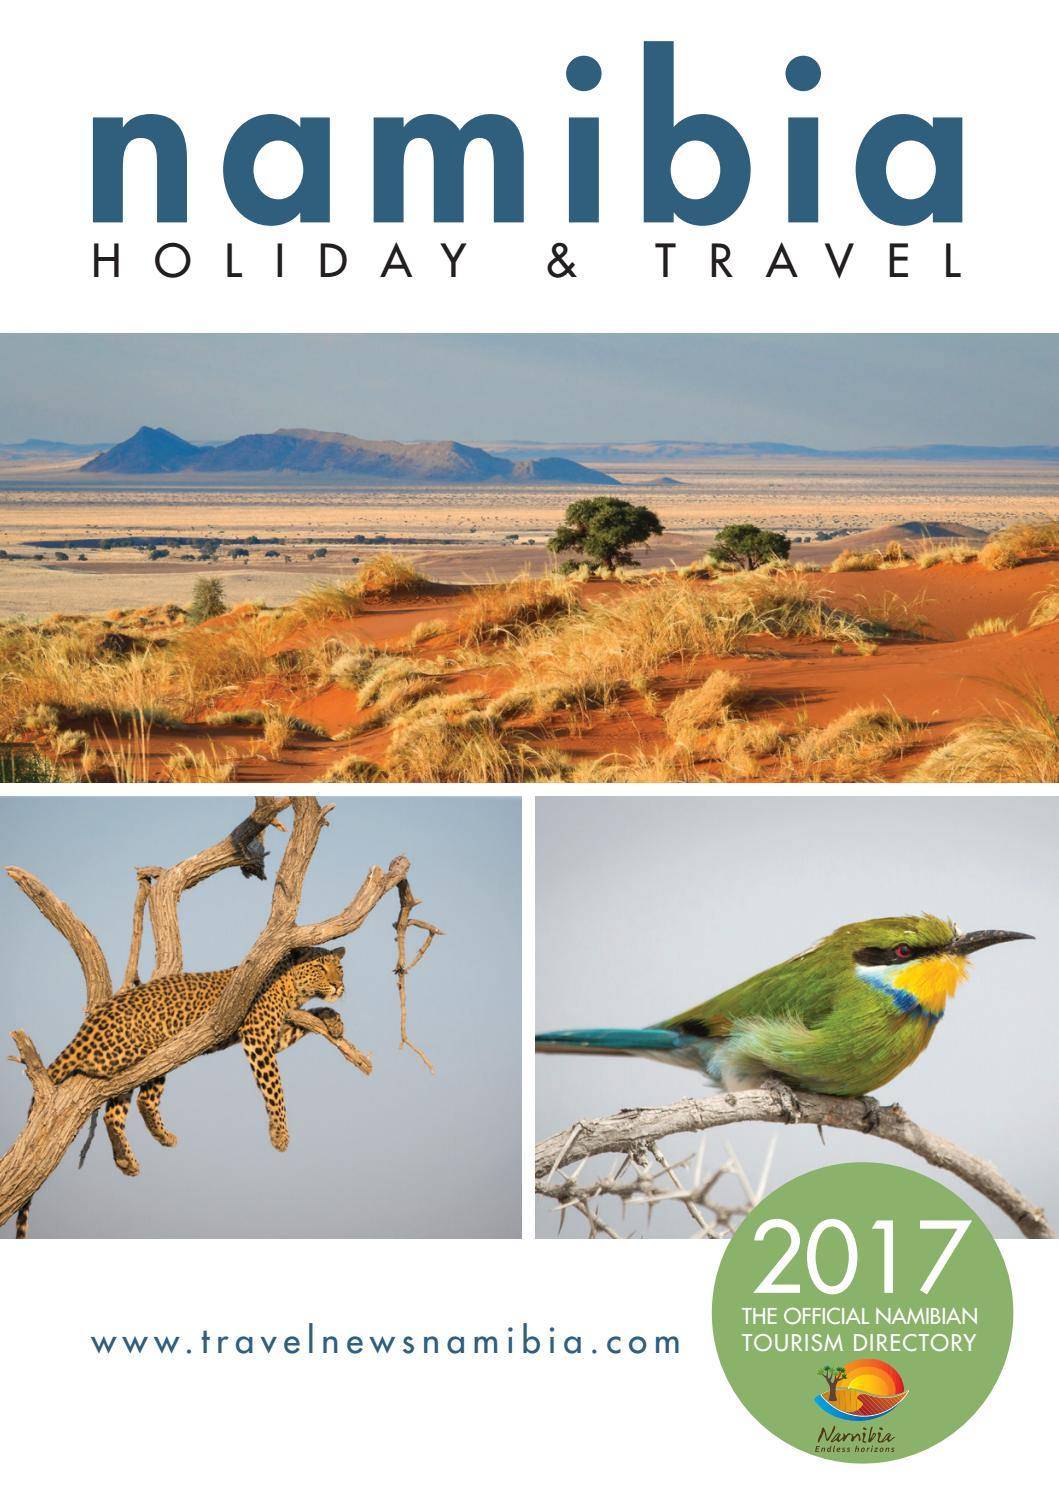 Namibia Holiday And Travel 2017 By Venture Media Issuu Free Ongkir Philips Docking Apple Dcm 2260